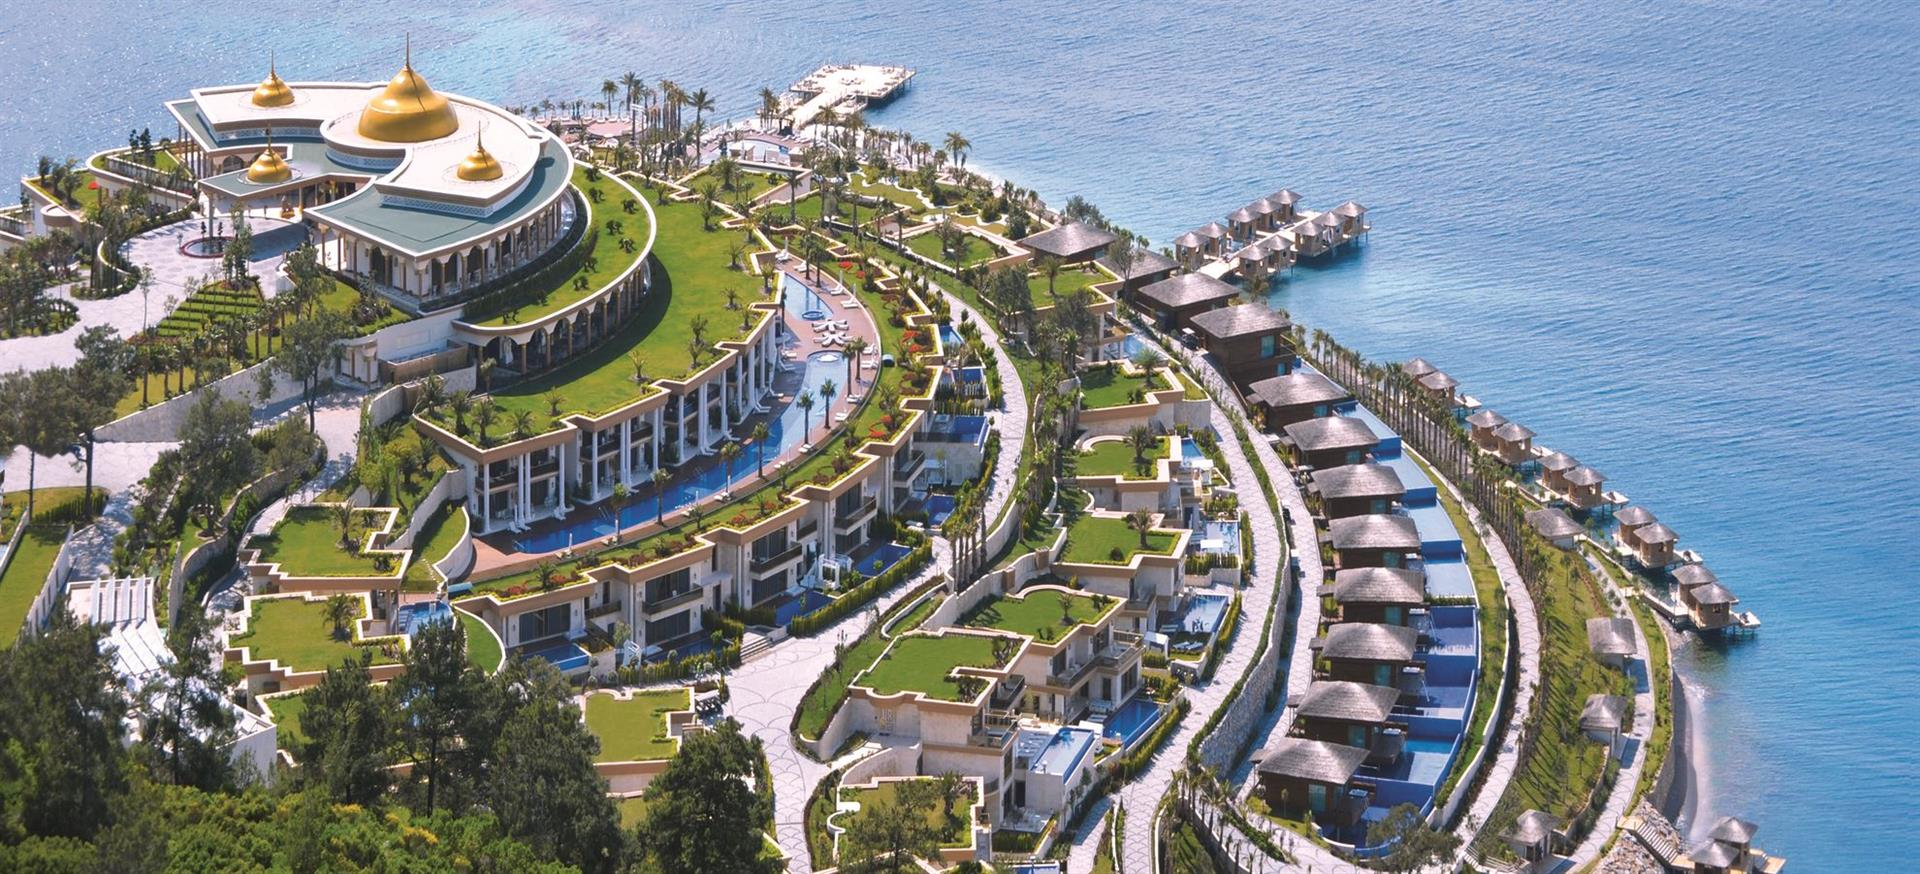 THE BODRUM BY PARAMOUNT HOTELS RESORT 5*